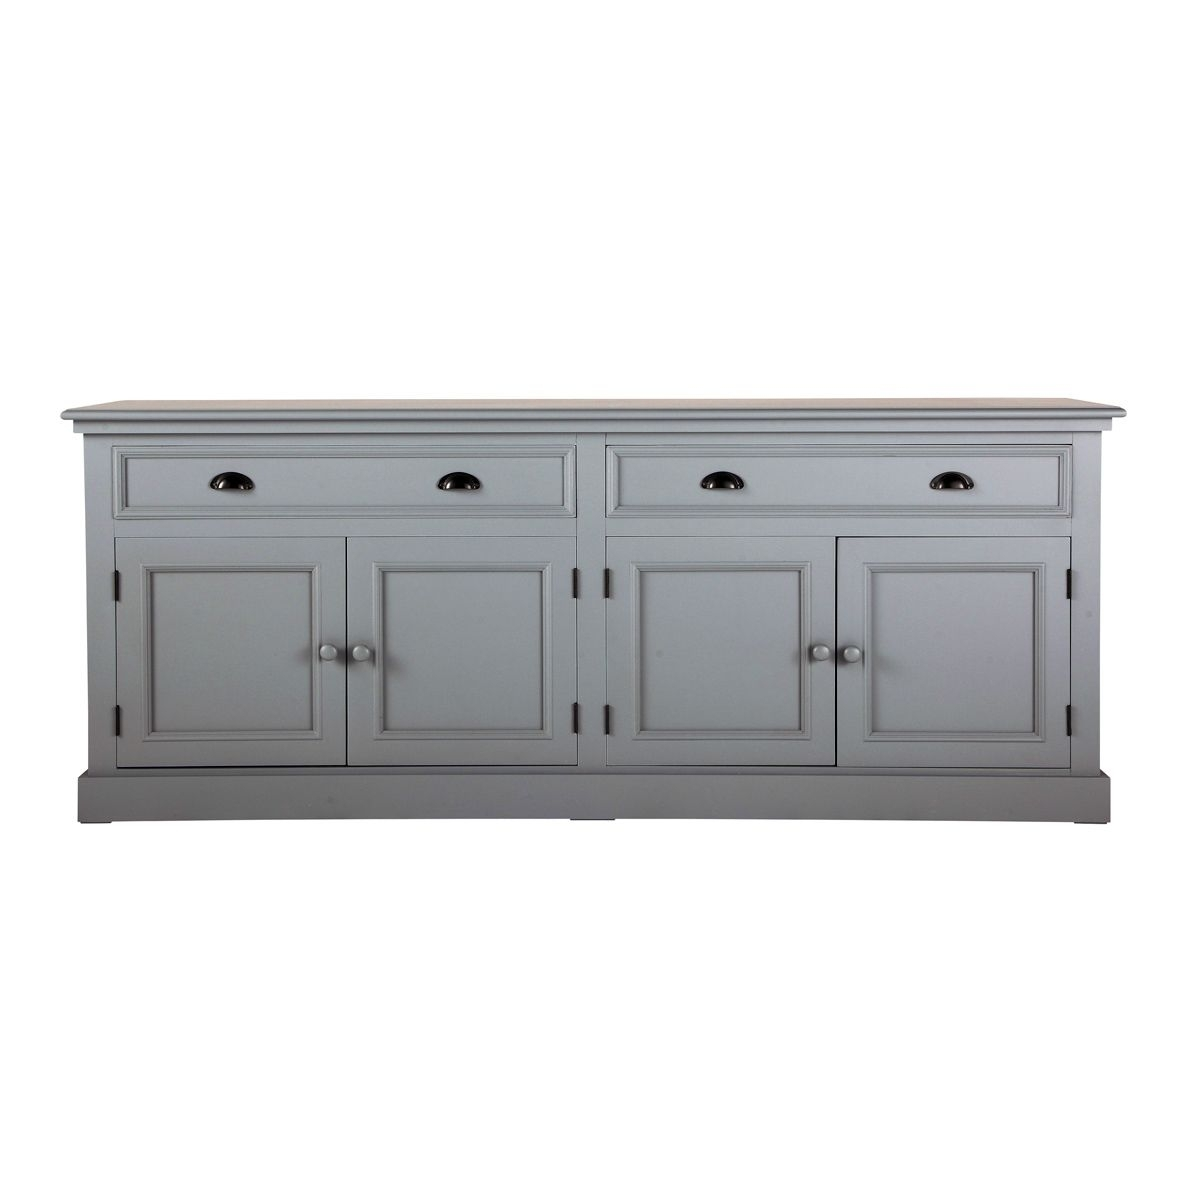 Buffet En Bois Gris L 200 Cm Newport | Furnitur | Pinterest With Regard To Most Recently Released Hartigan 2 Door Sideboards (View 2 of 20)